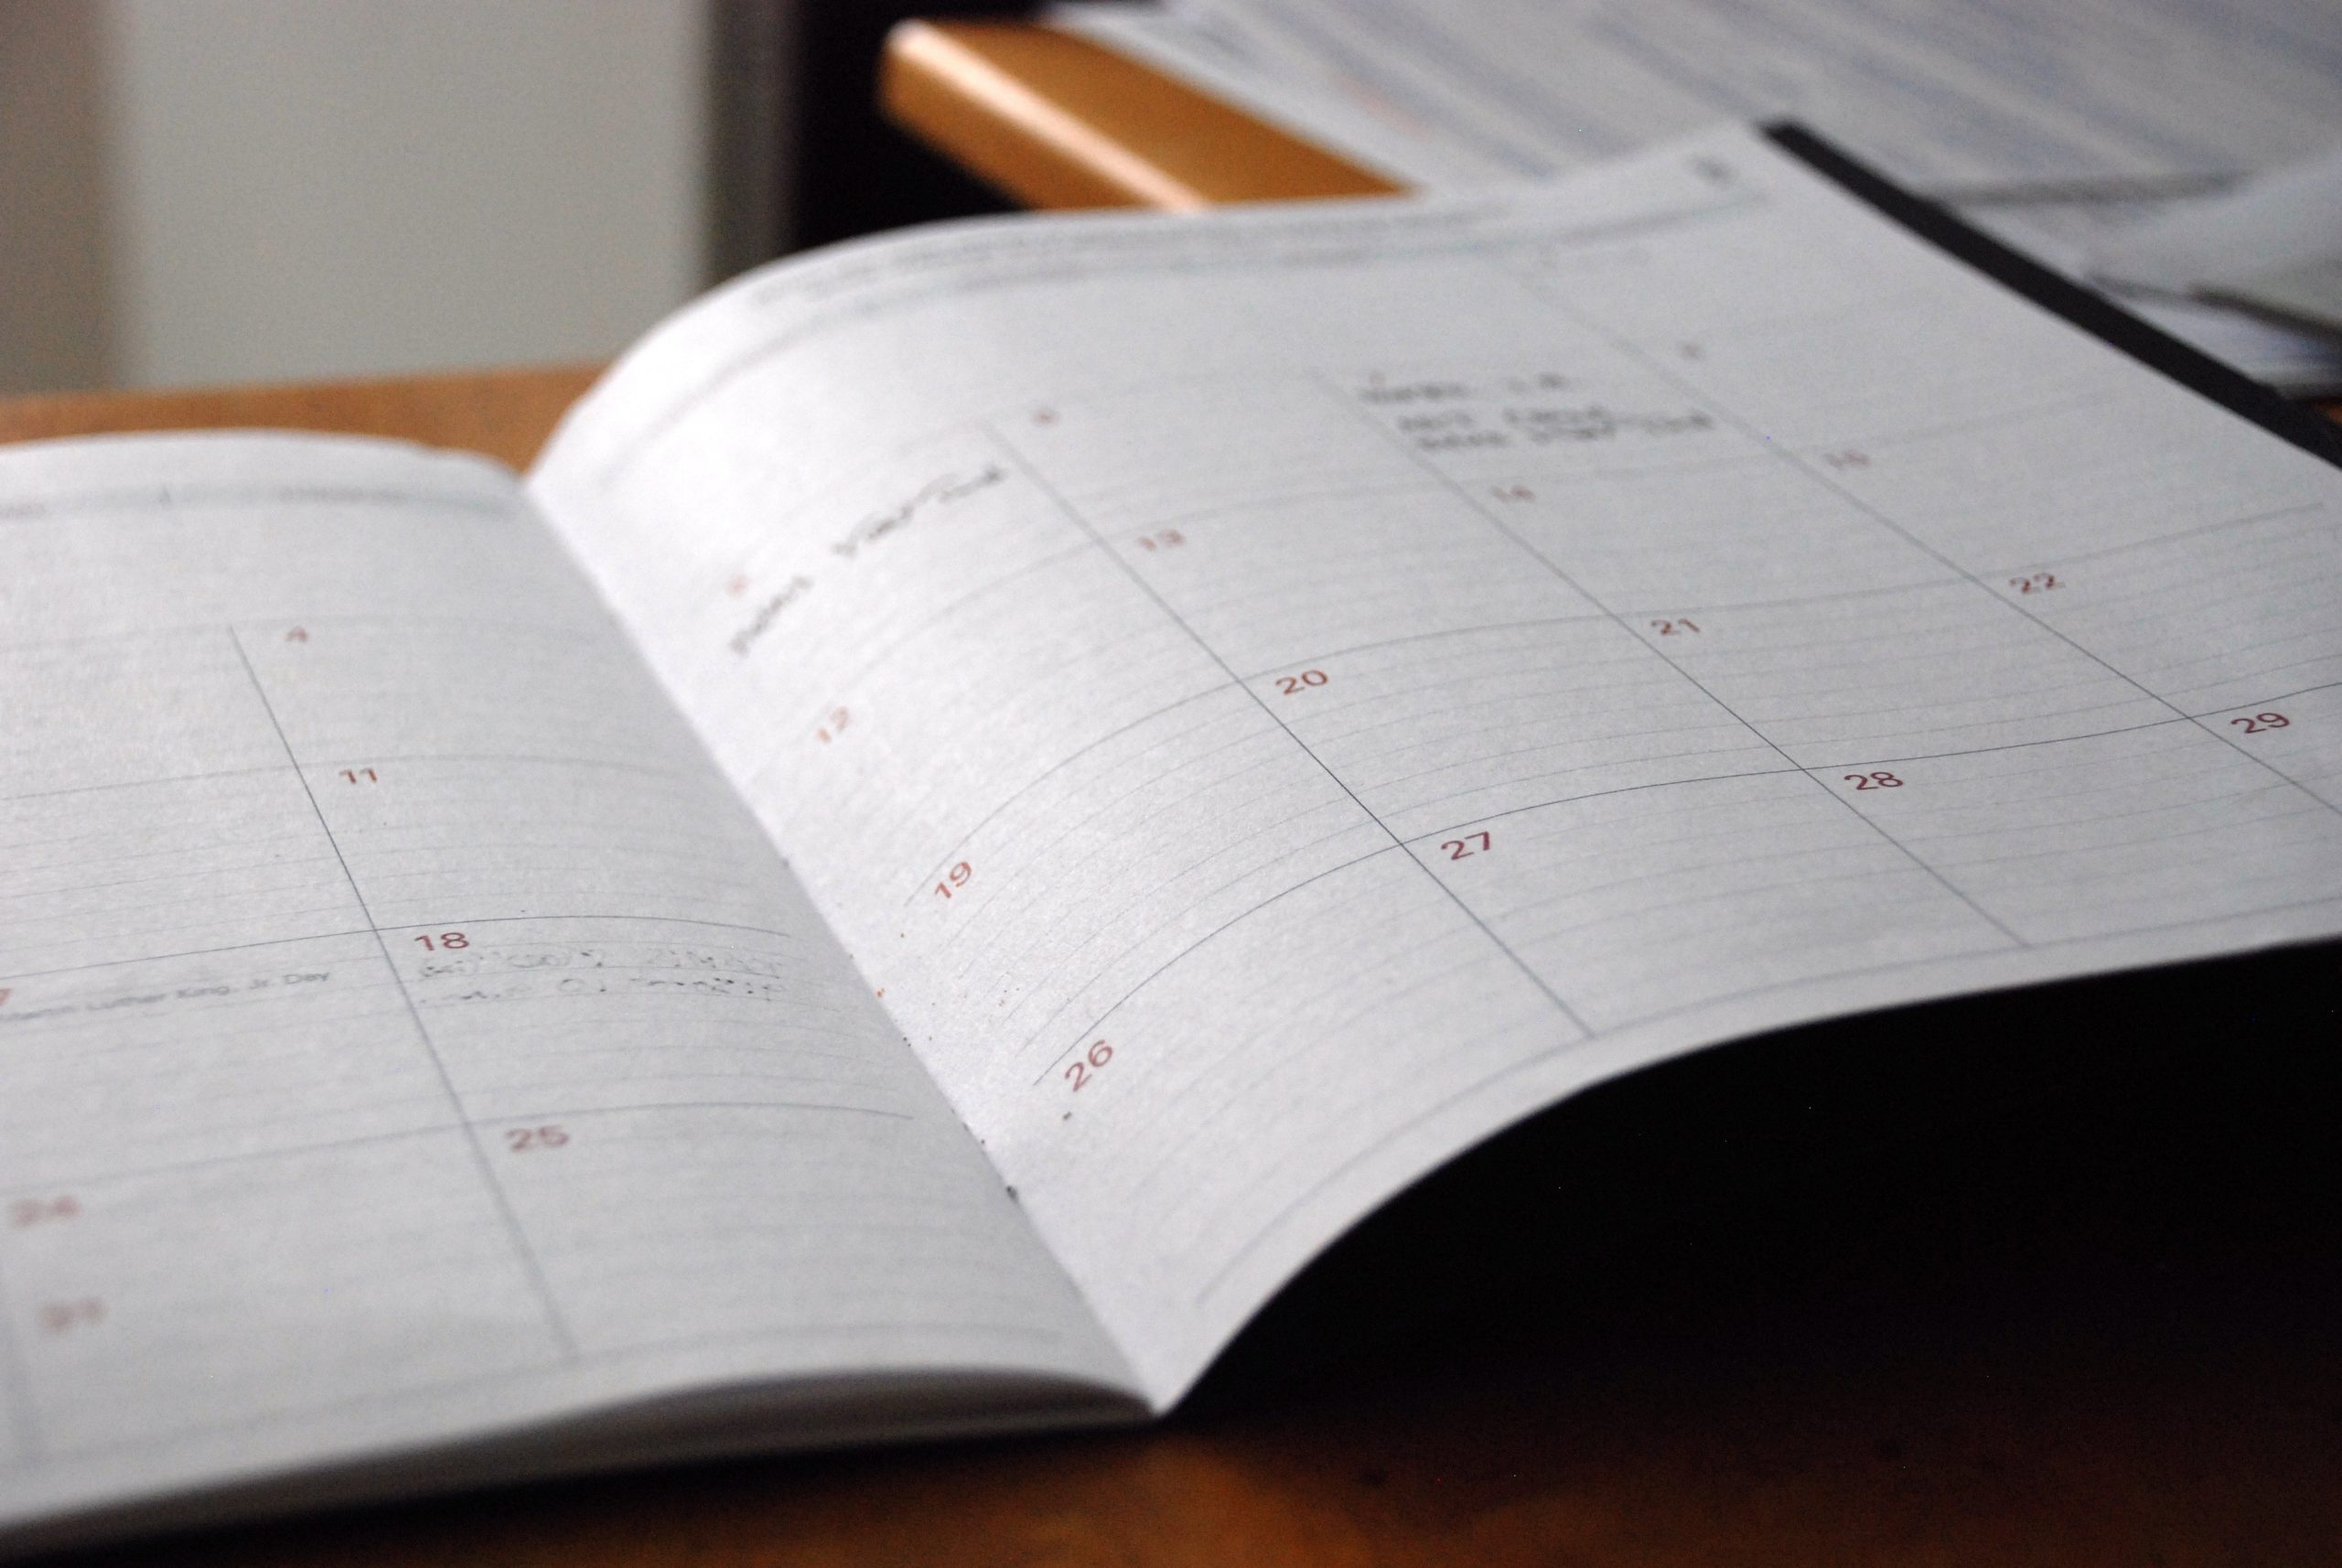 Four career paths to consider for a flexible schedule